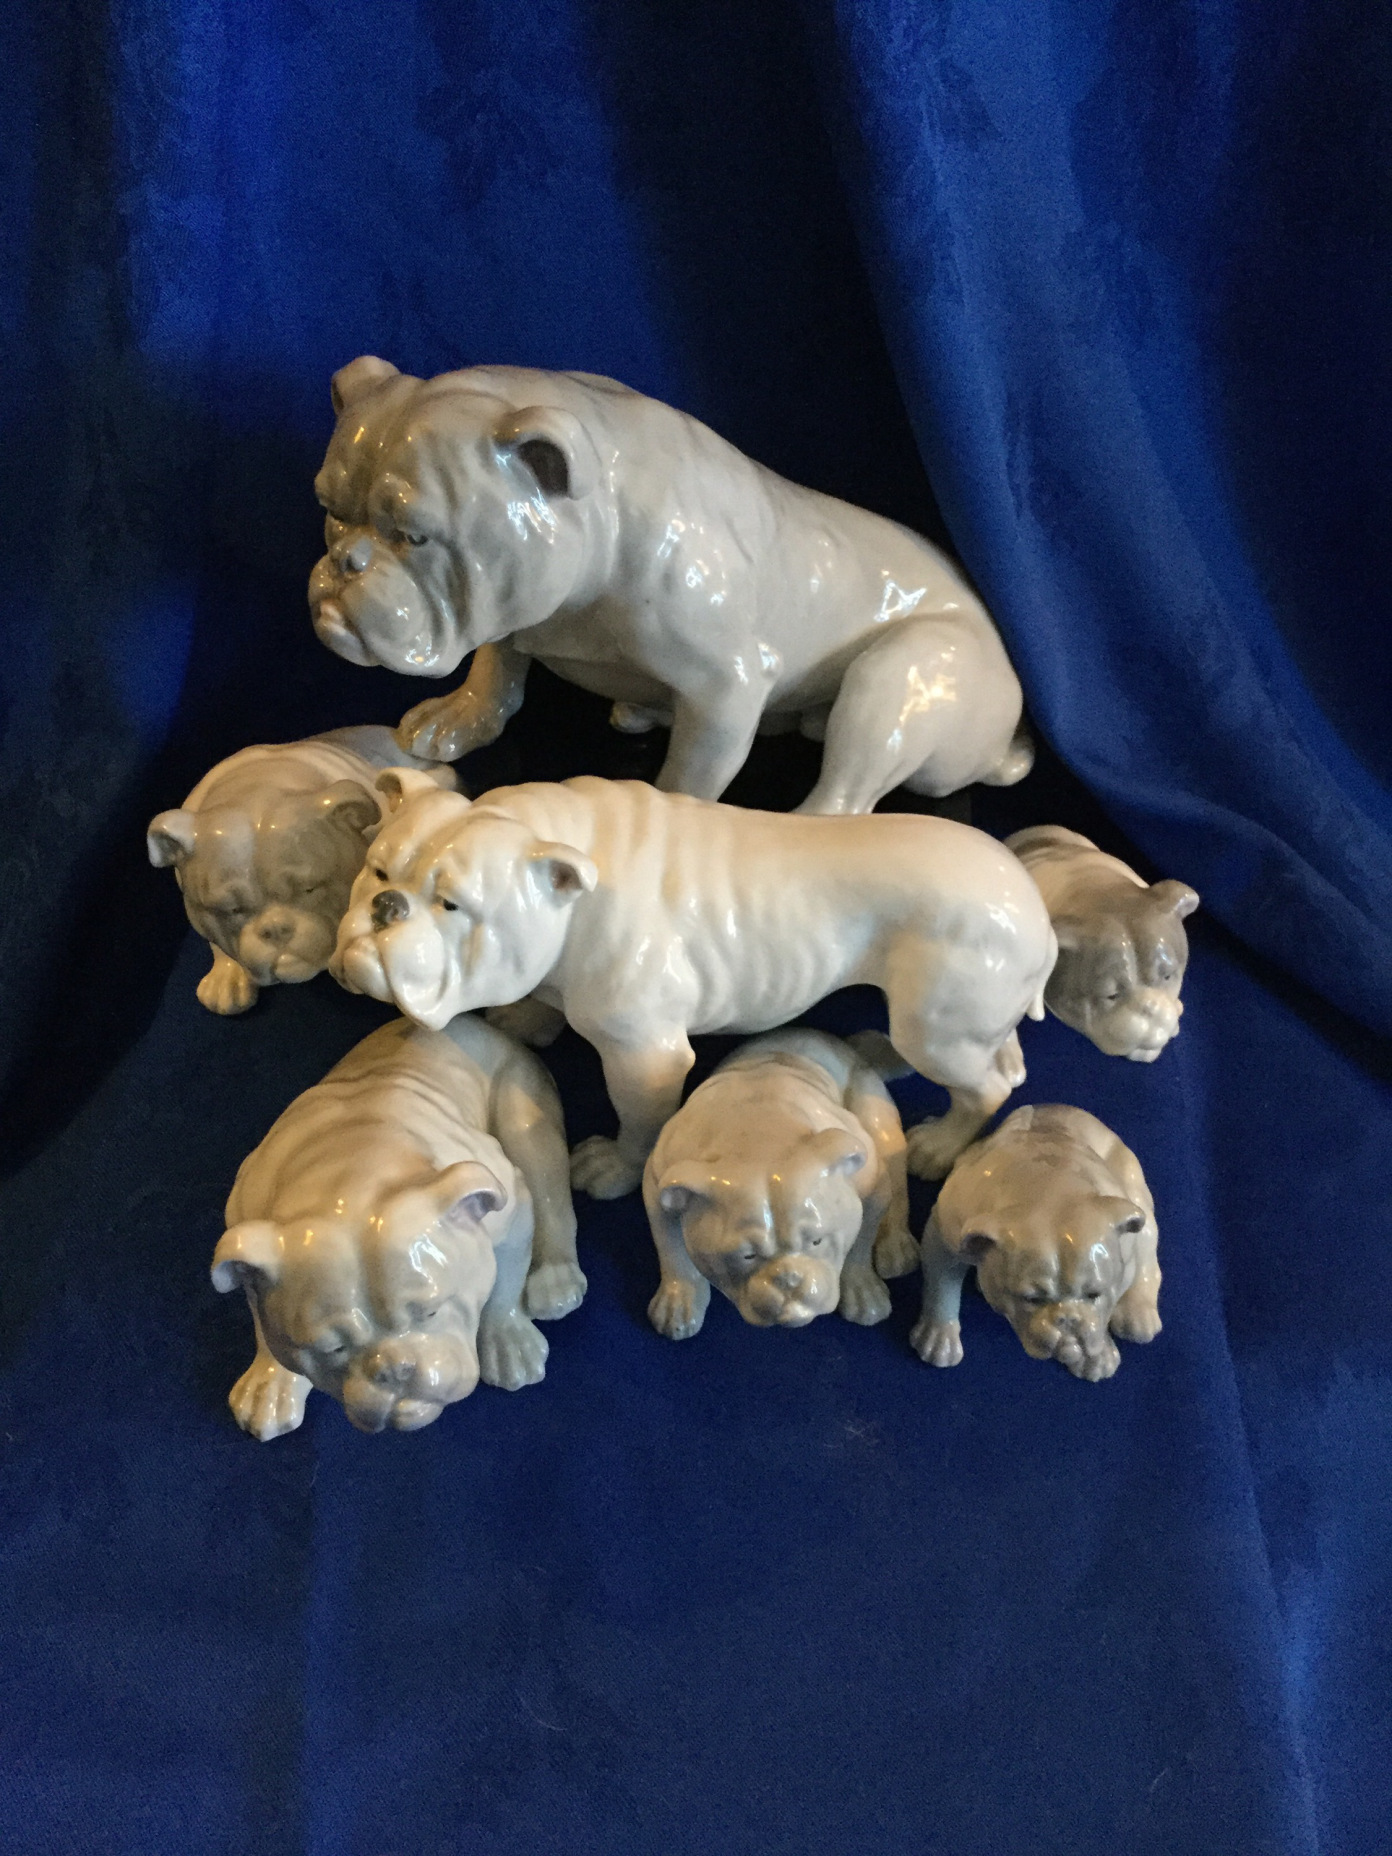 Bulldog collectors